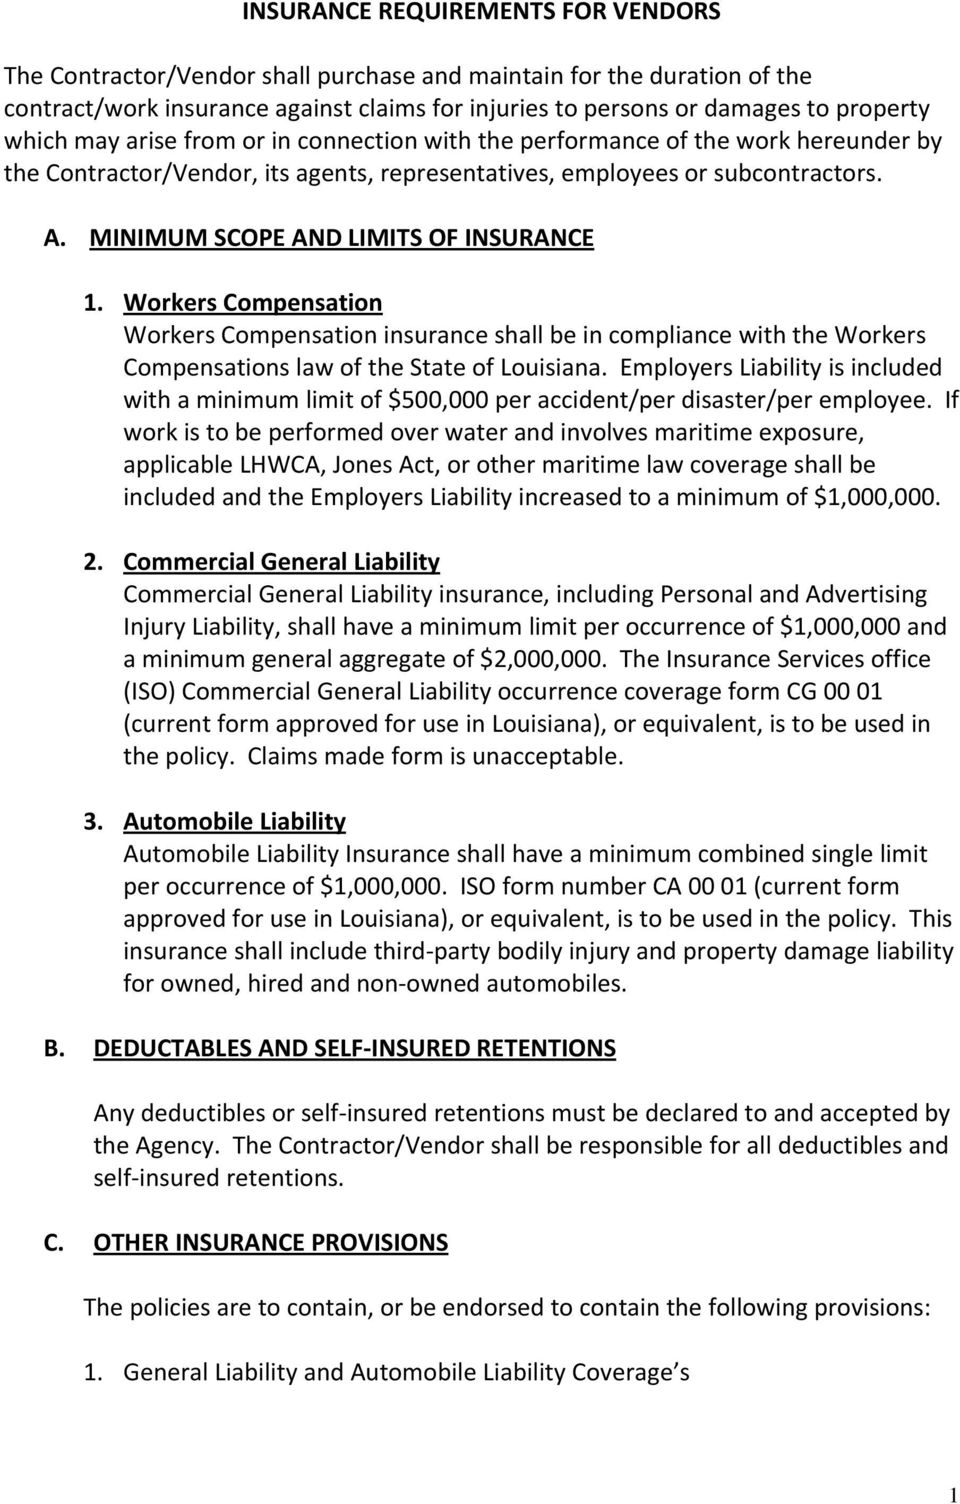 INSURANCE REQUIREMENTS FOR VENDORS - PDF